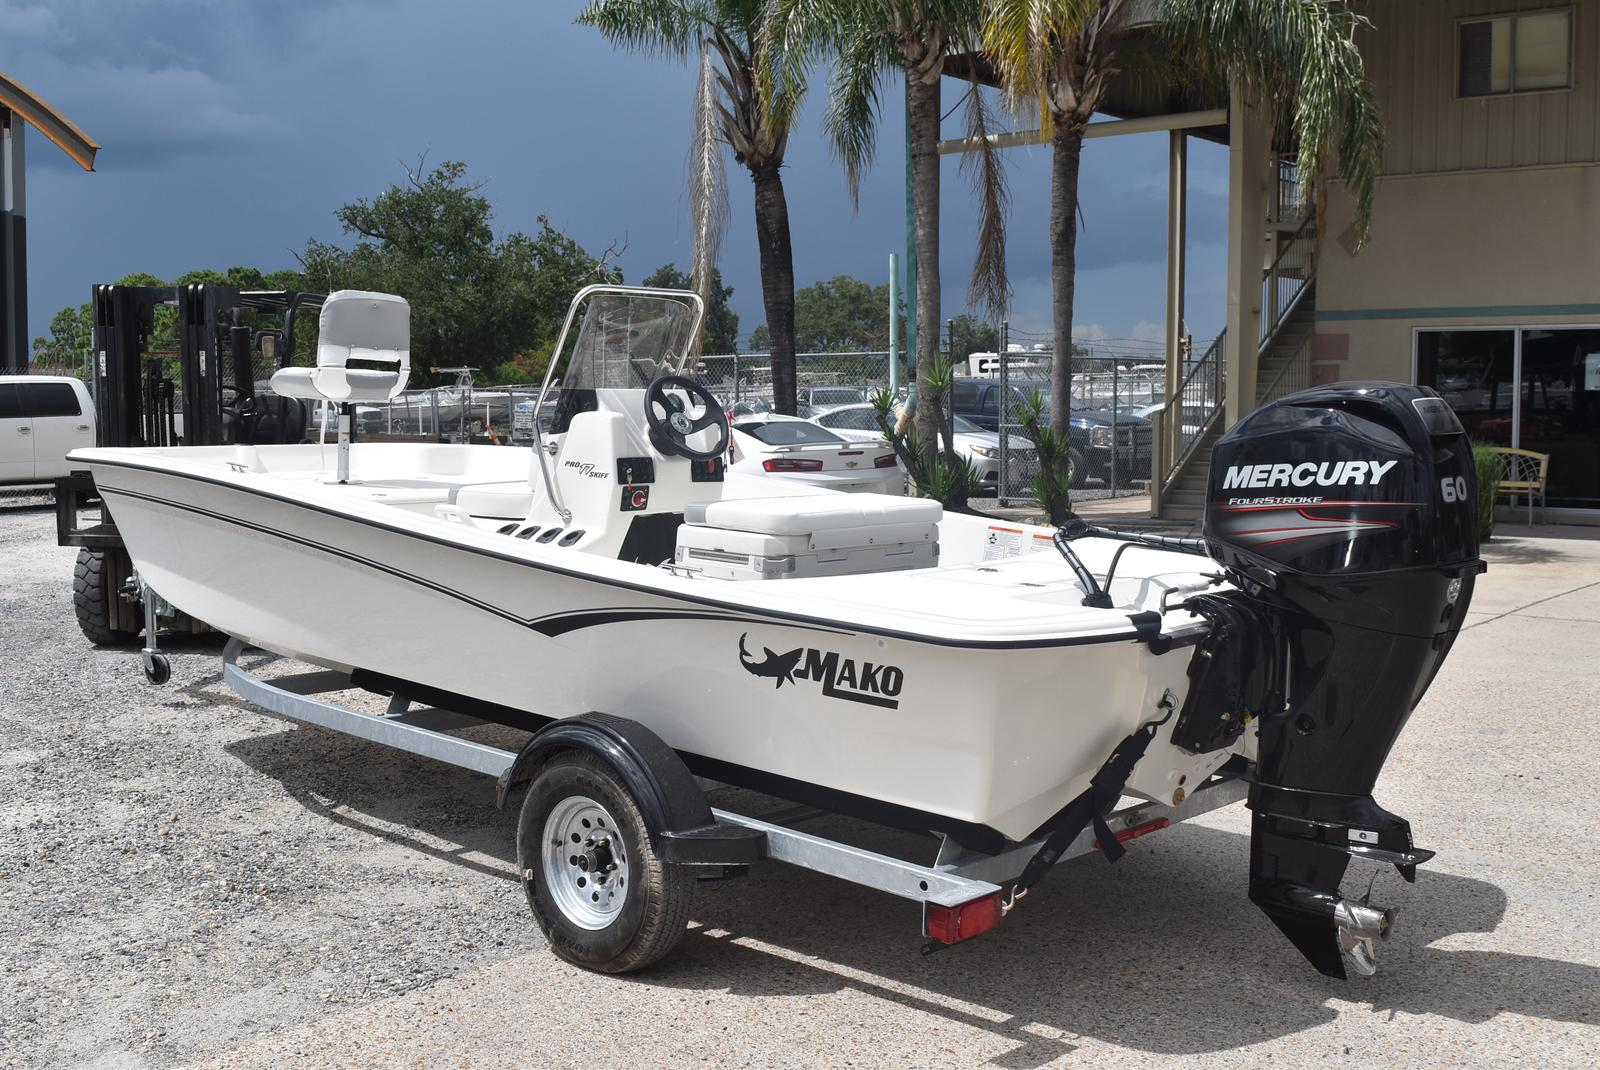 2020 Mako boat for sale, model of the boat is Pro Skiff 17, 75 ELPT & Image # 175 of 702